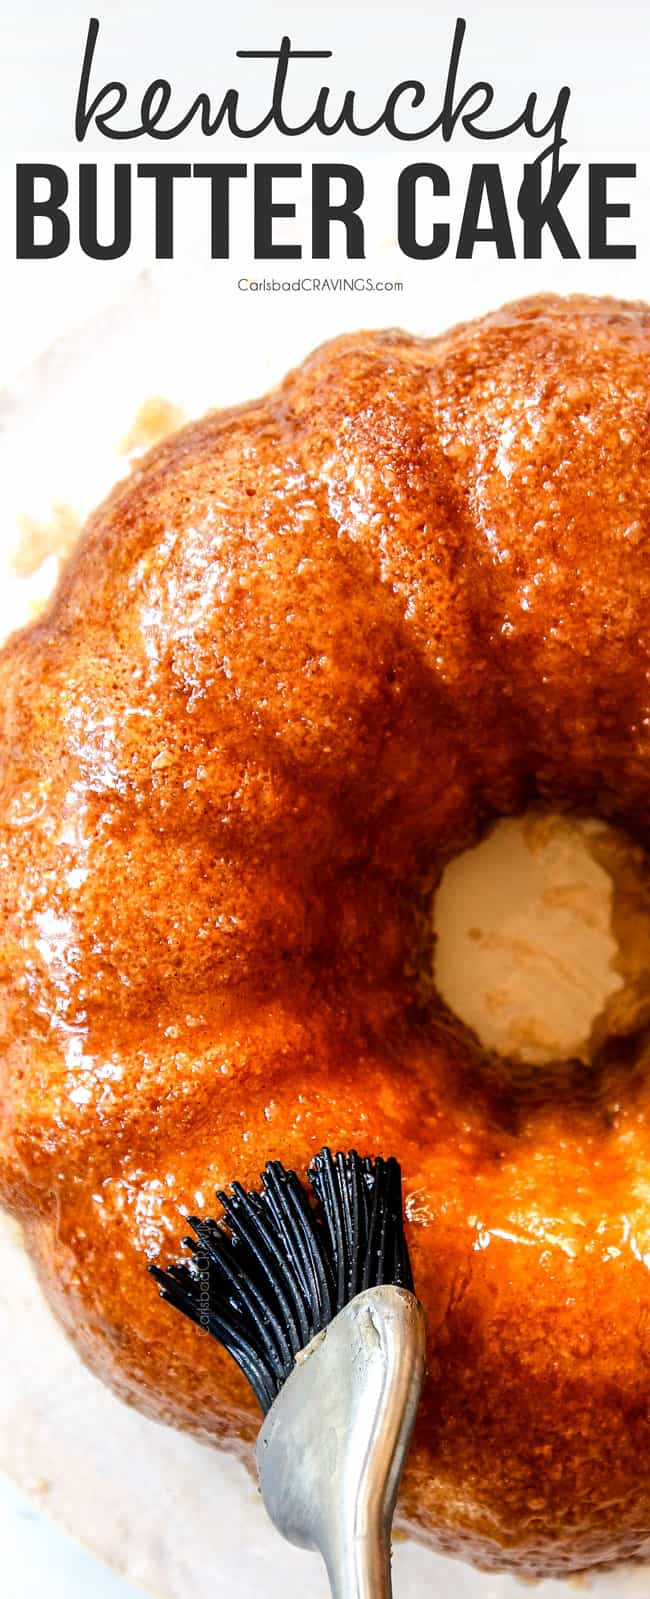 showing how to make the best Kentucky butter cake by glazing cake with butter sauce